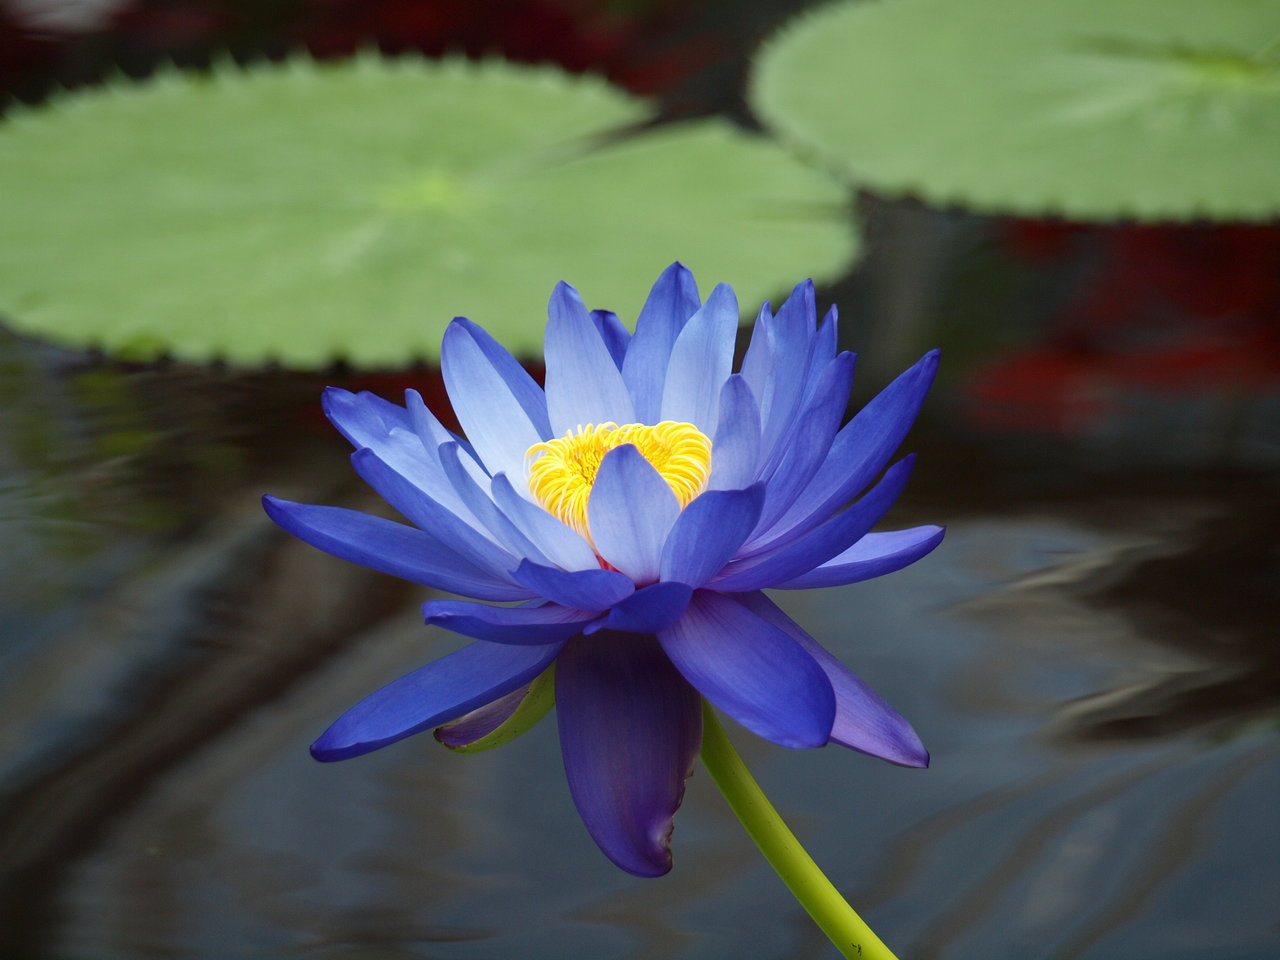 Water lily flowers images. - Flower Wallpaper